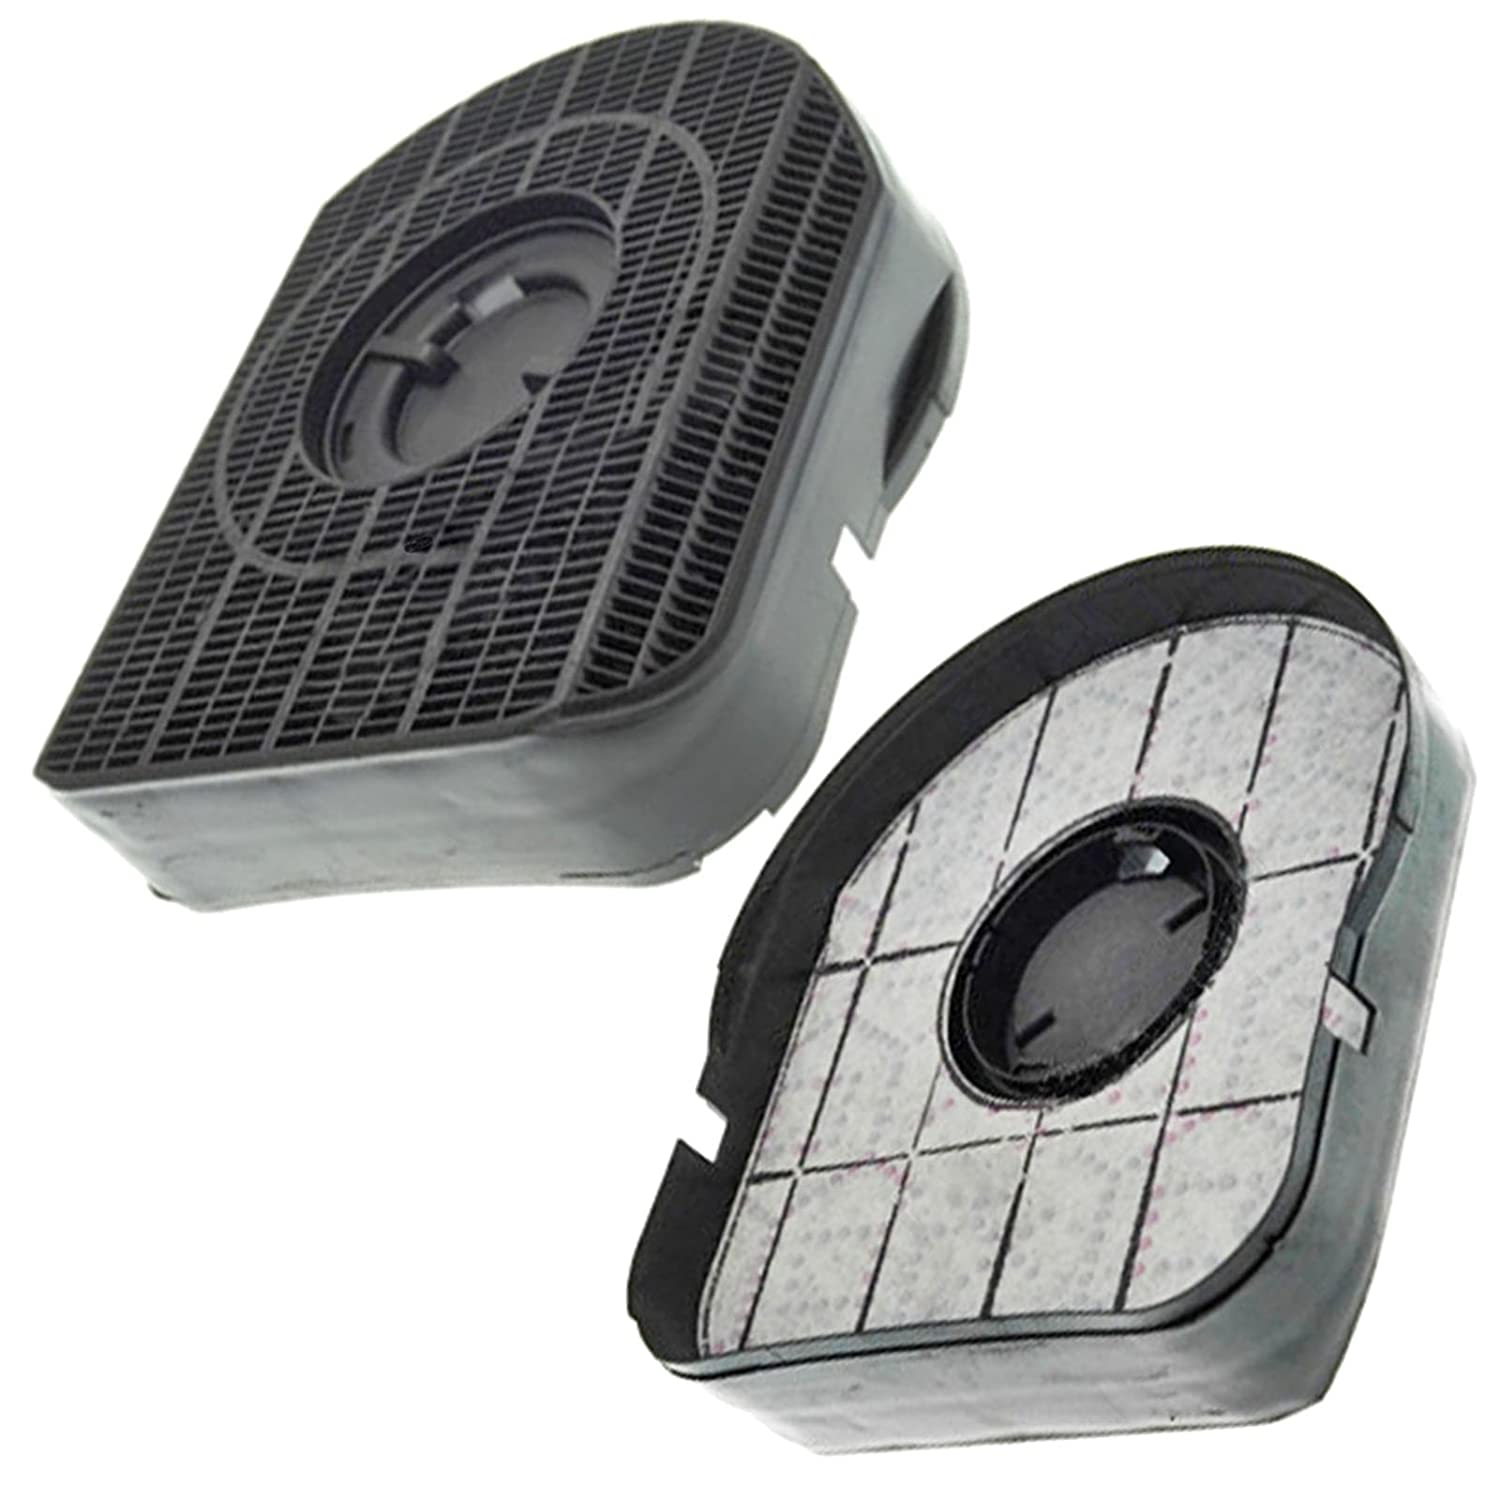 SPARES2GO Type 200 Charcoal Carbon Filter for Belling CHIM60 CHIM90 Cooker Hood Vent Extractor (Pack of 2)